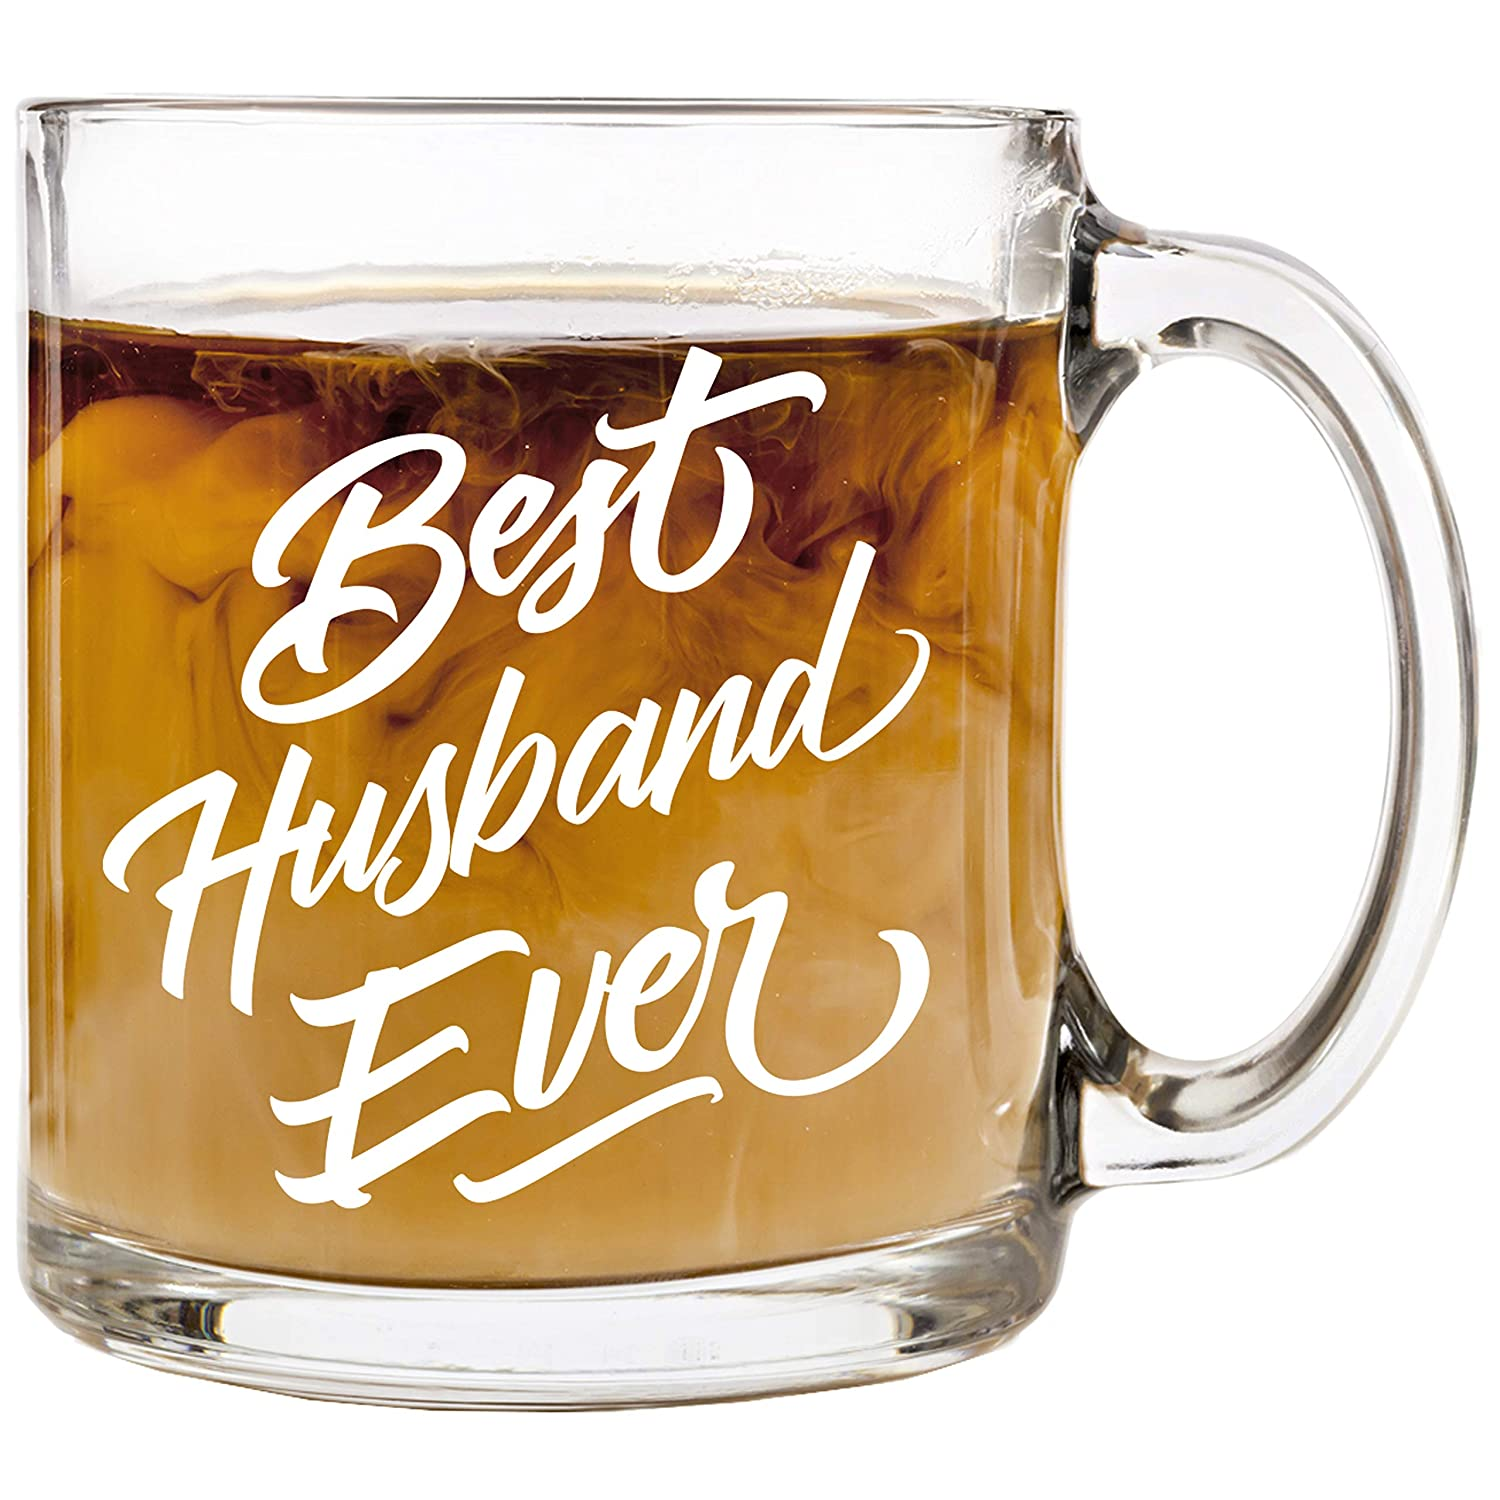 13 oz Glass Coffee Cup Mug Unique Cups Stocking Stuffer Gifts Presents Idea Best Husband Ever Birthday Christmas Valentines Day Anniversary Gift Present Ideas for Husband Groom Him from Wife